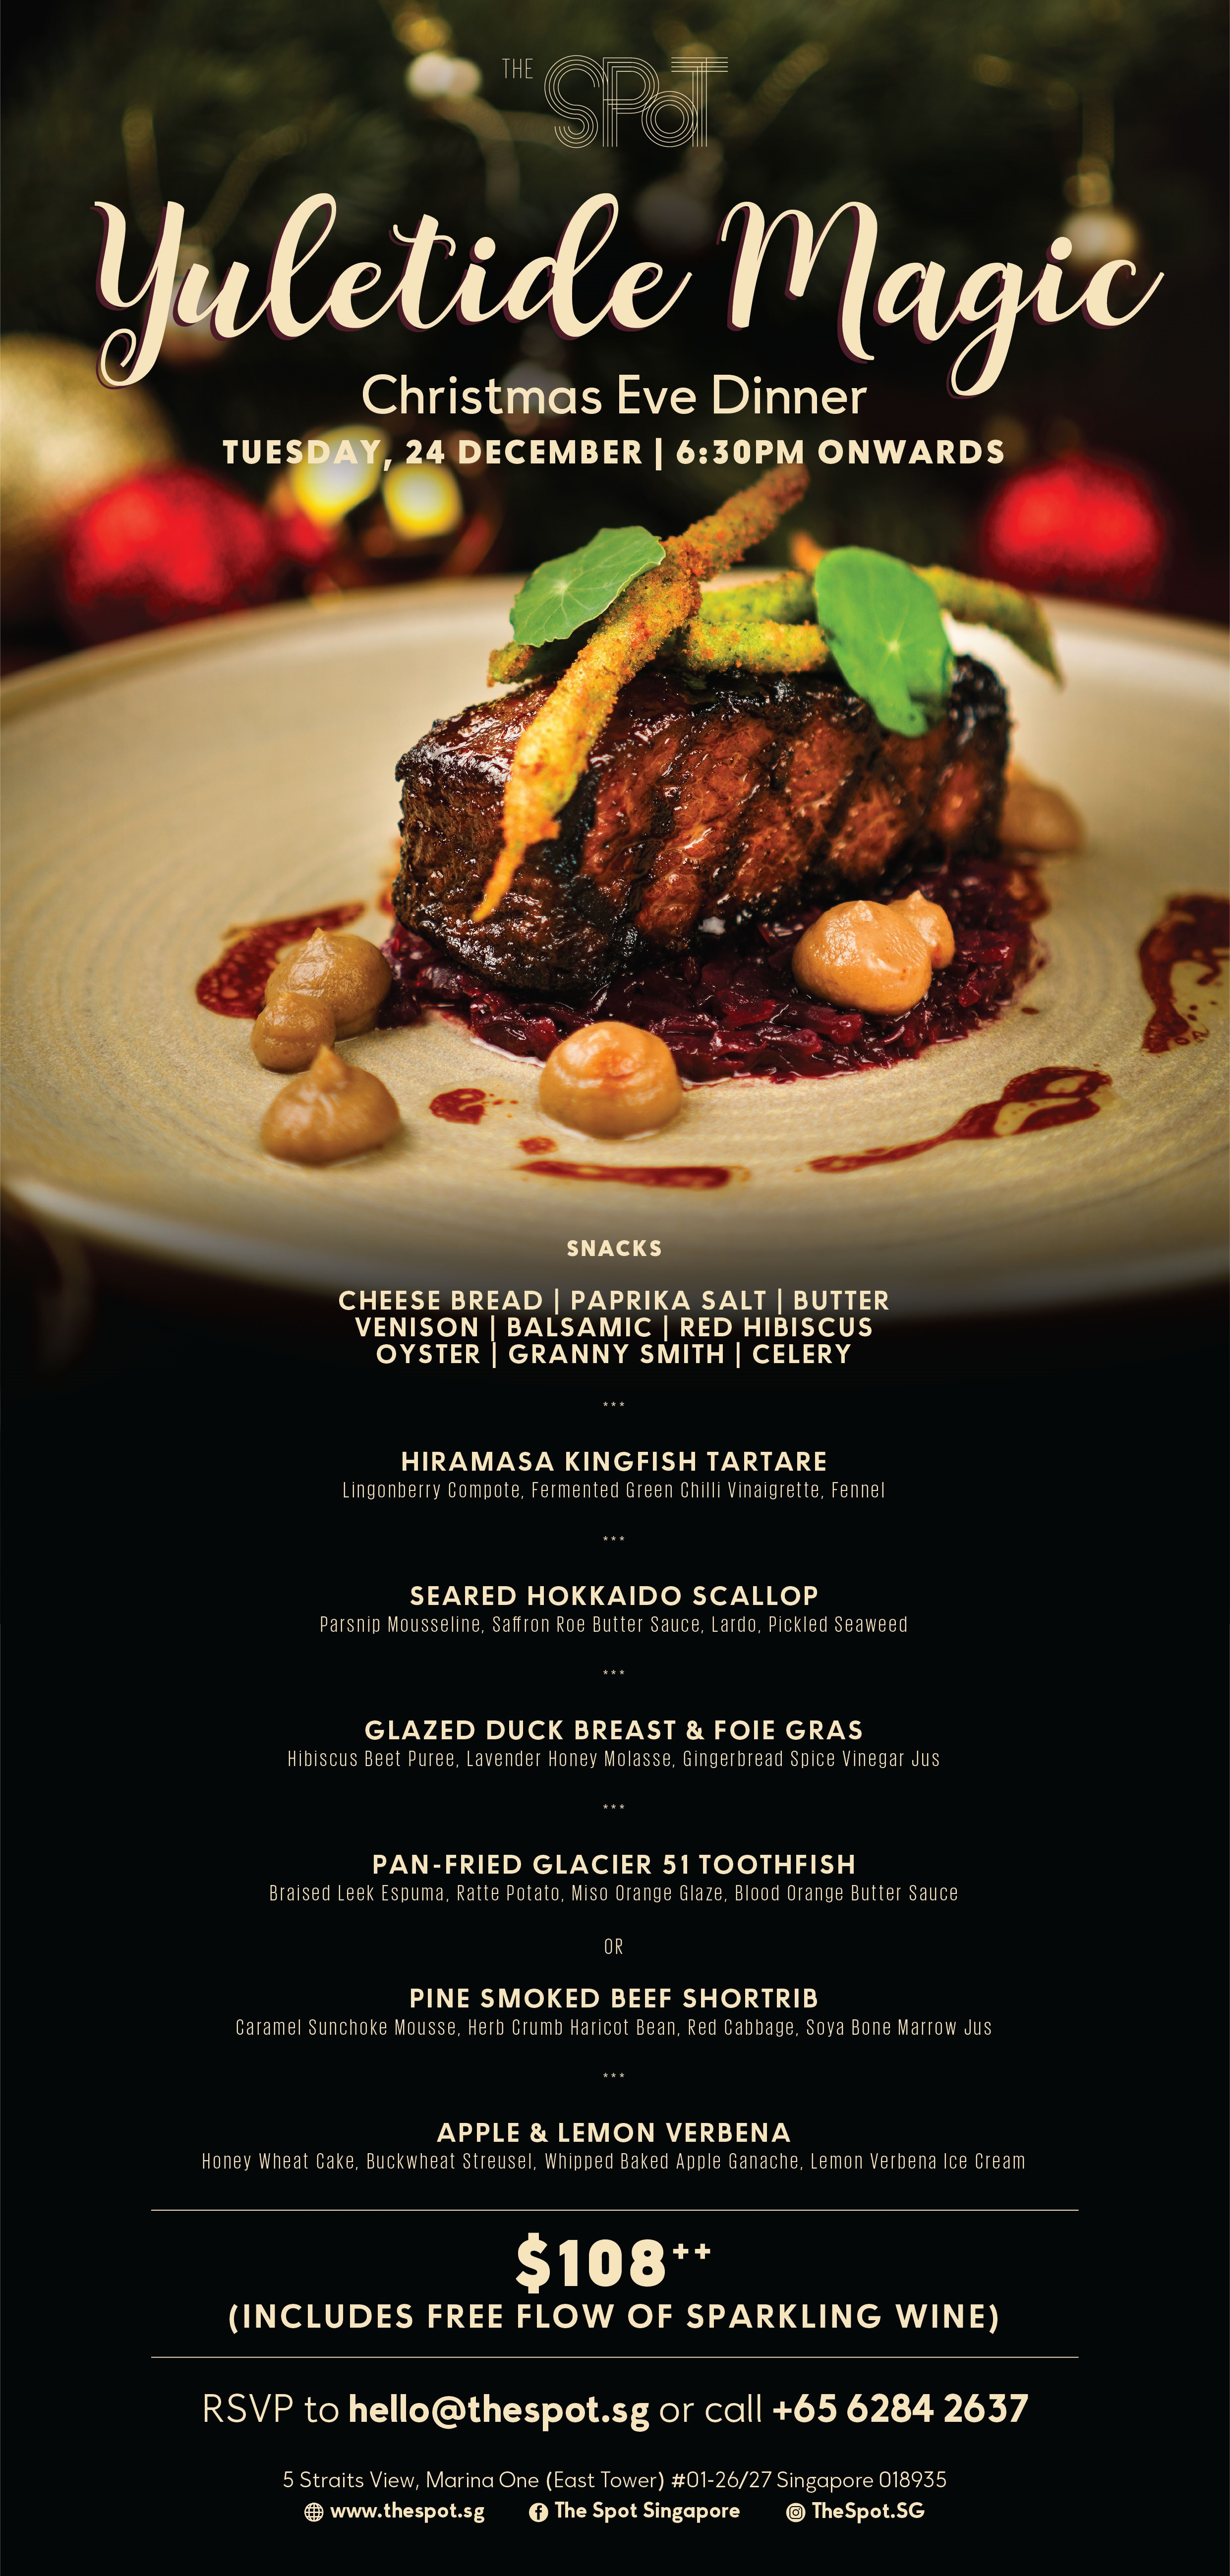 Christmas eve dinner at The Spot Singapore, featuring a 6 course dinner menu, including sparkling wines. Great for a festive gathering with your family and friends.